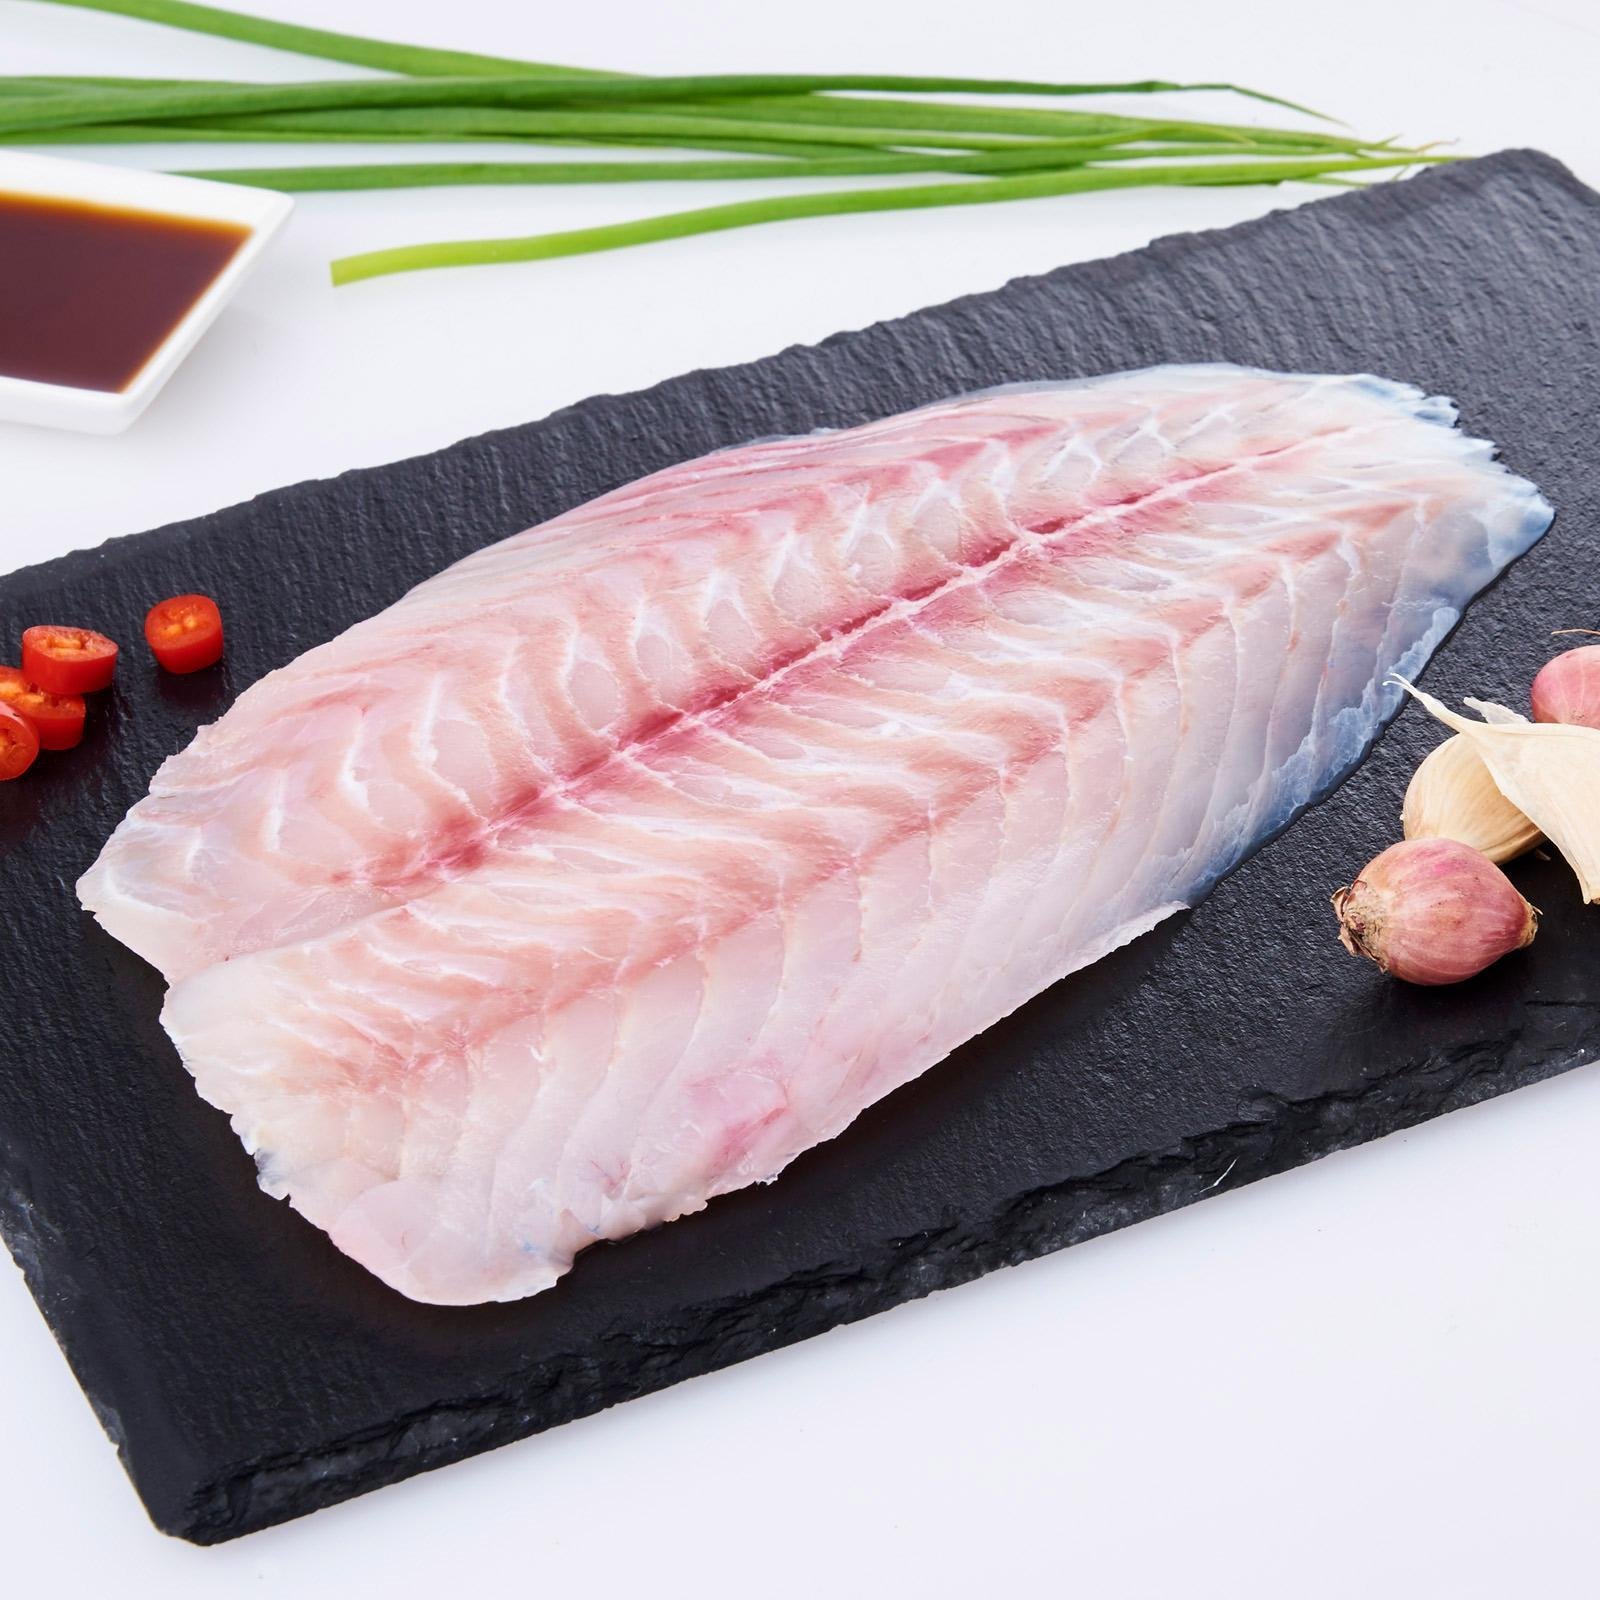 Serve by Hai Sia Seafood - Fresh Sole Fillet